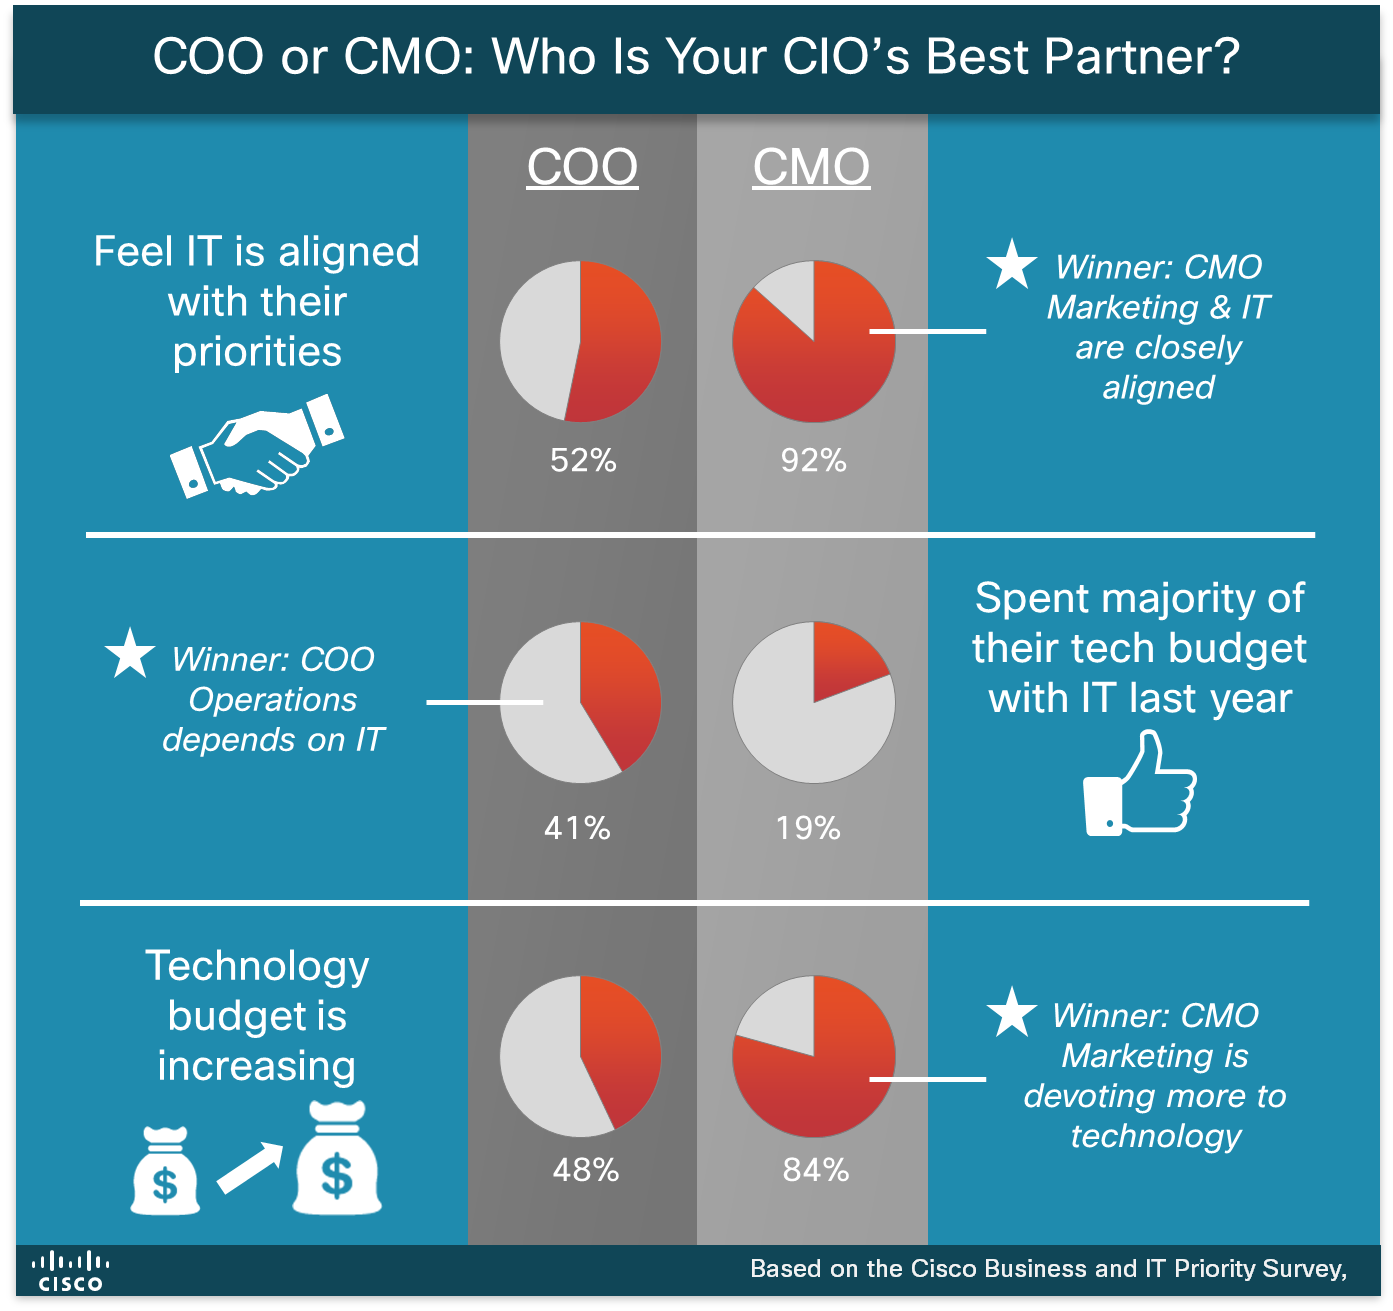 COO or CMO for CIO Partnership Cisco